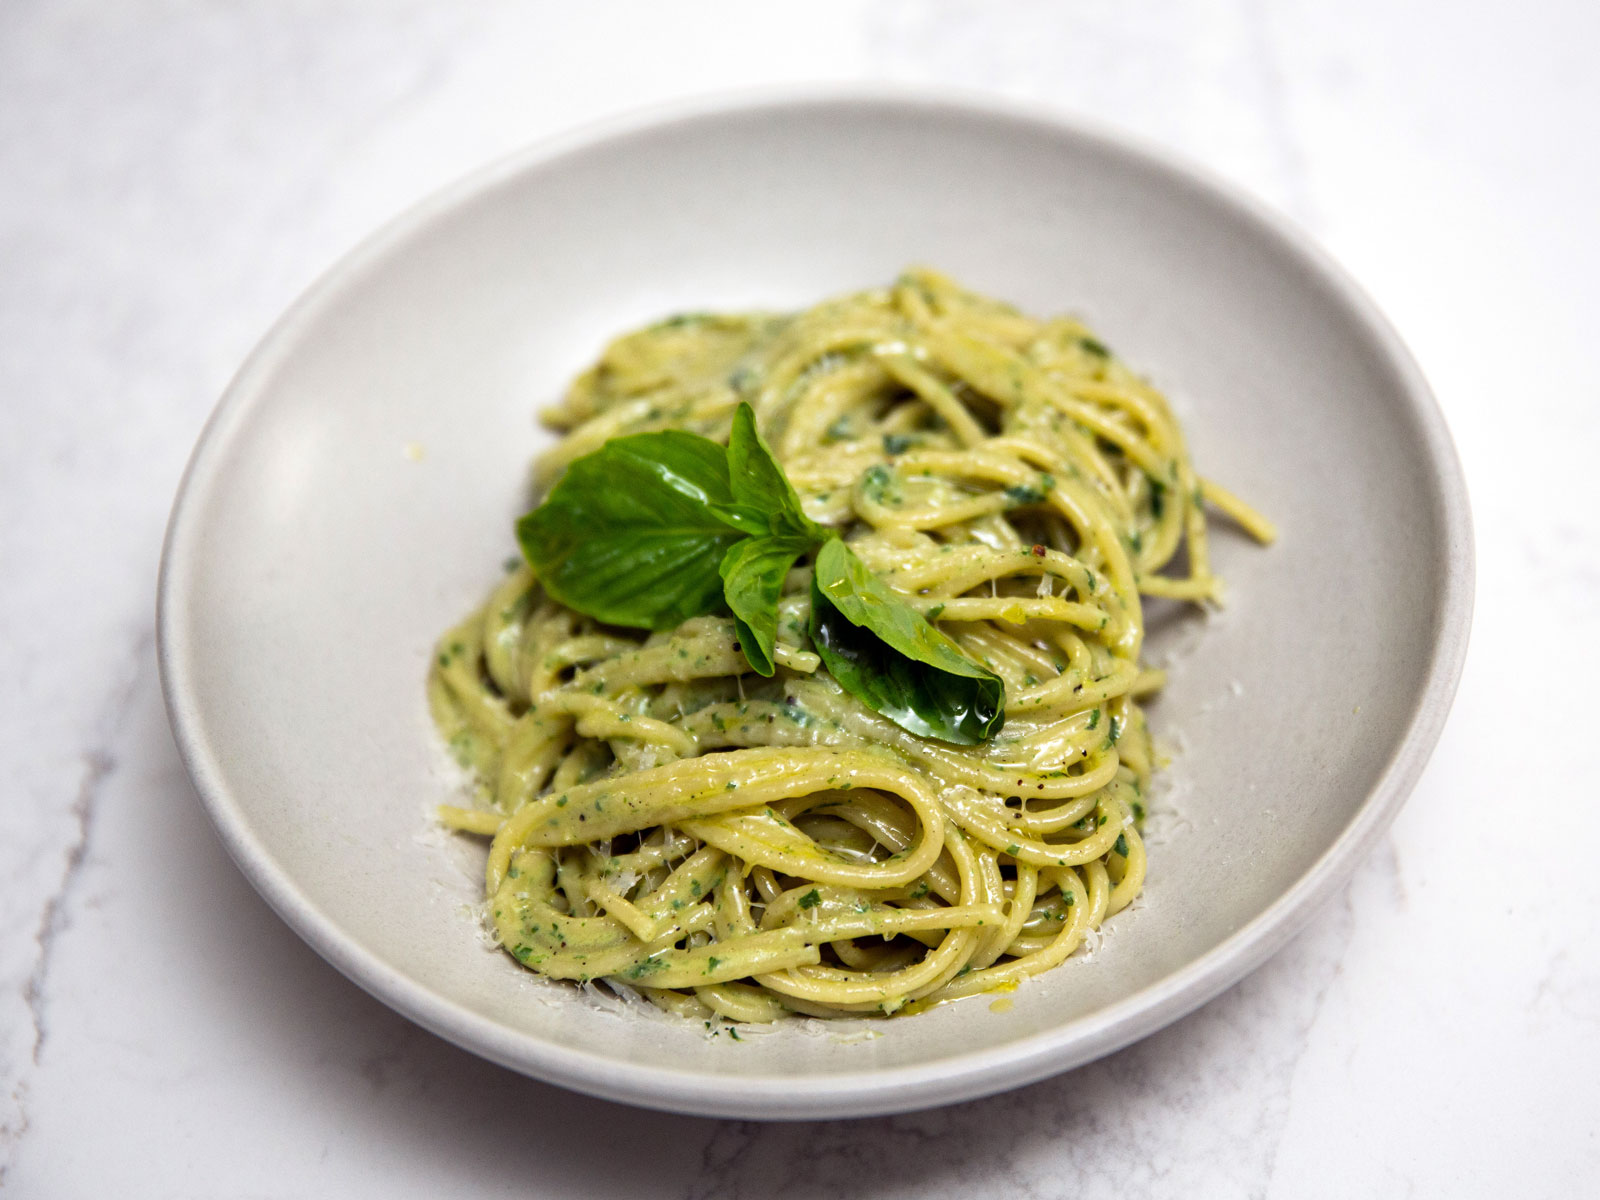 This Creamy, Indulgent Basil Pasta Is Ready in Just 10 Minutes